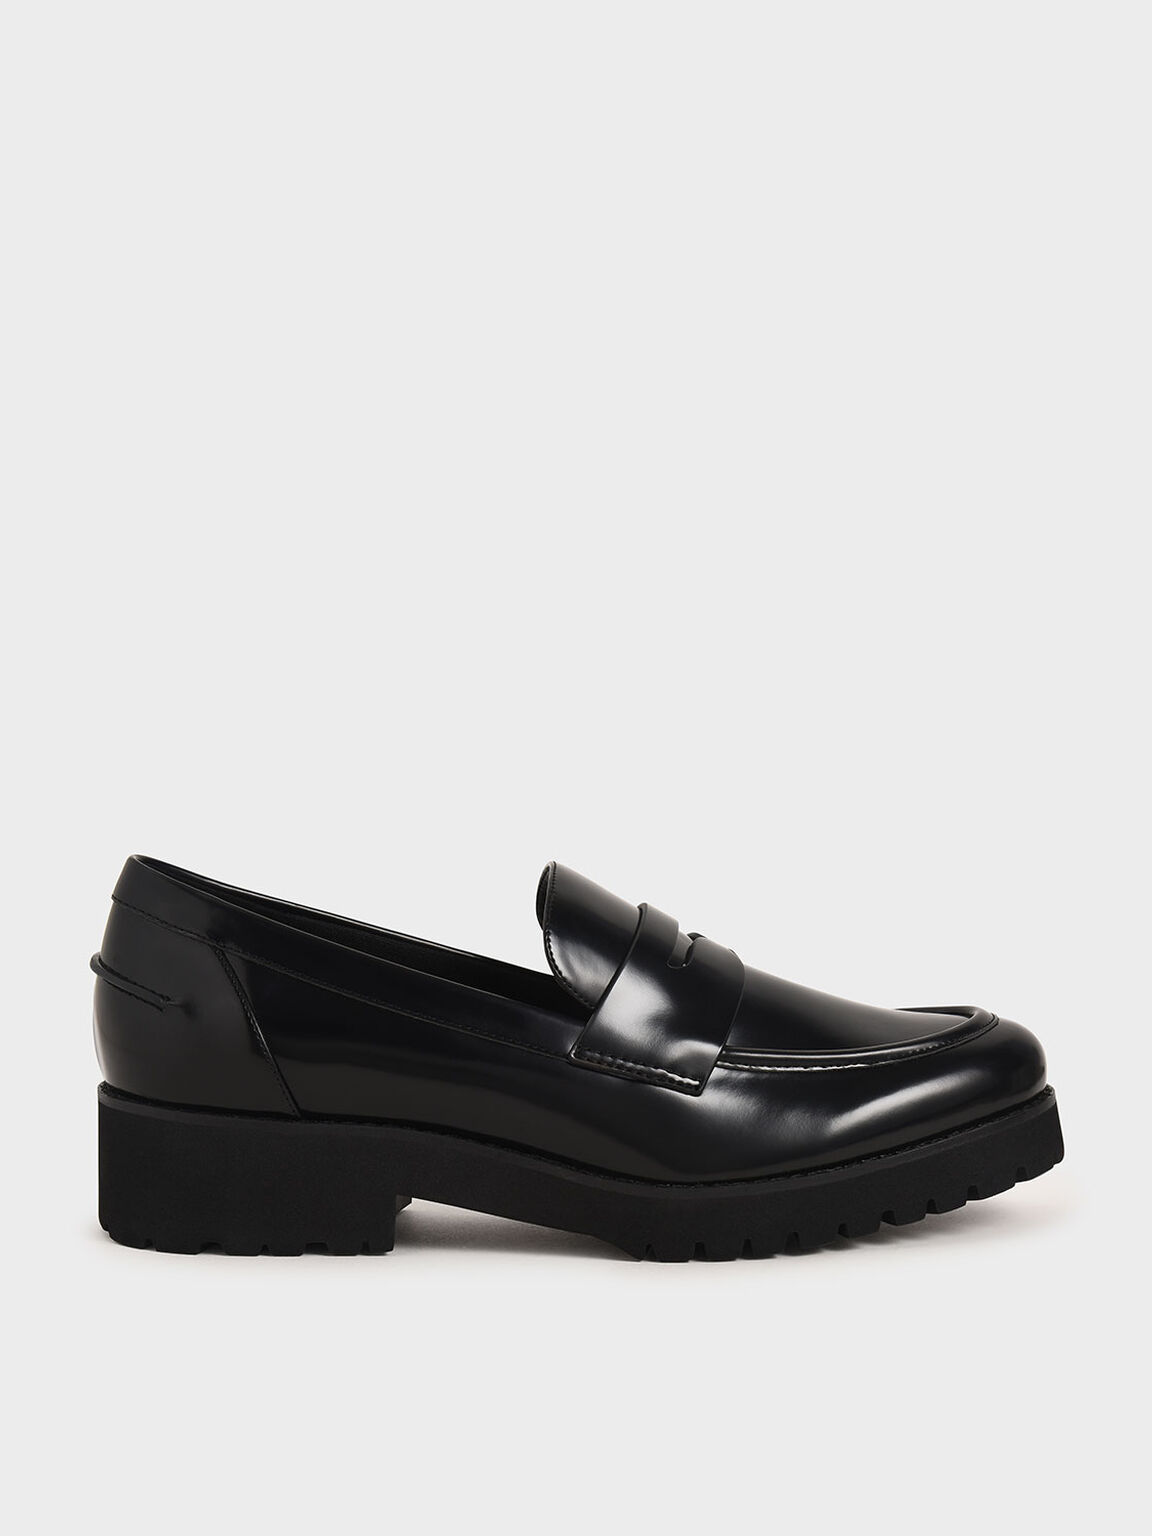 Platform Penny Loafers, Black, hi-res